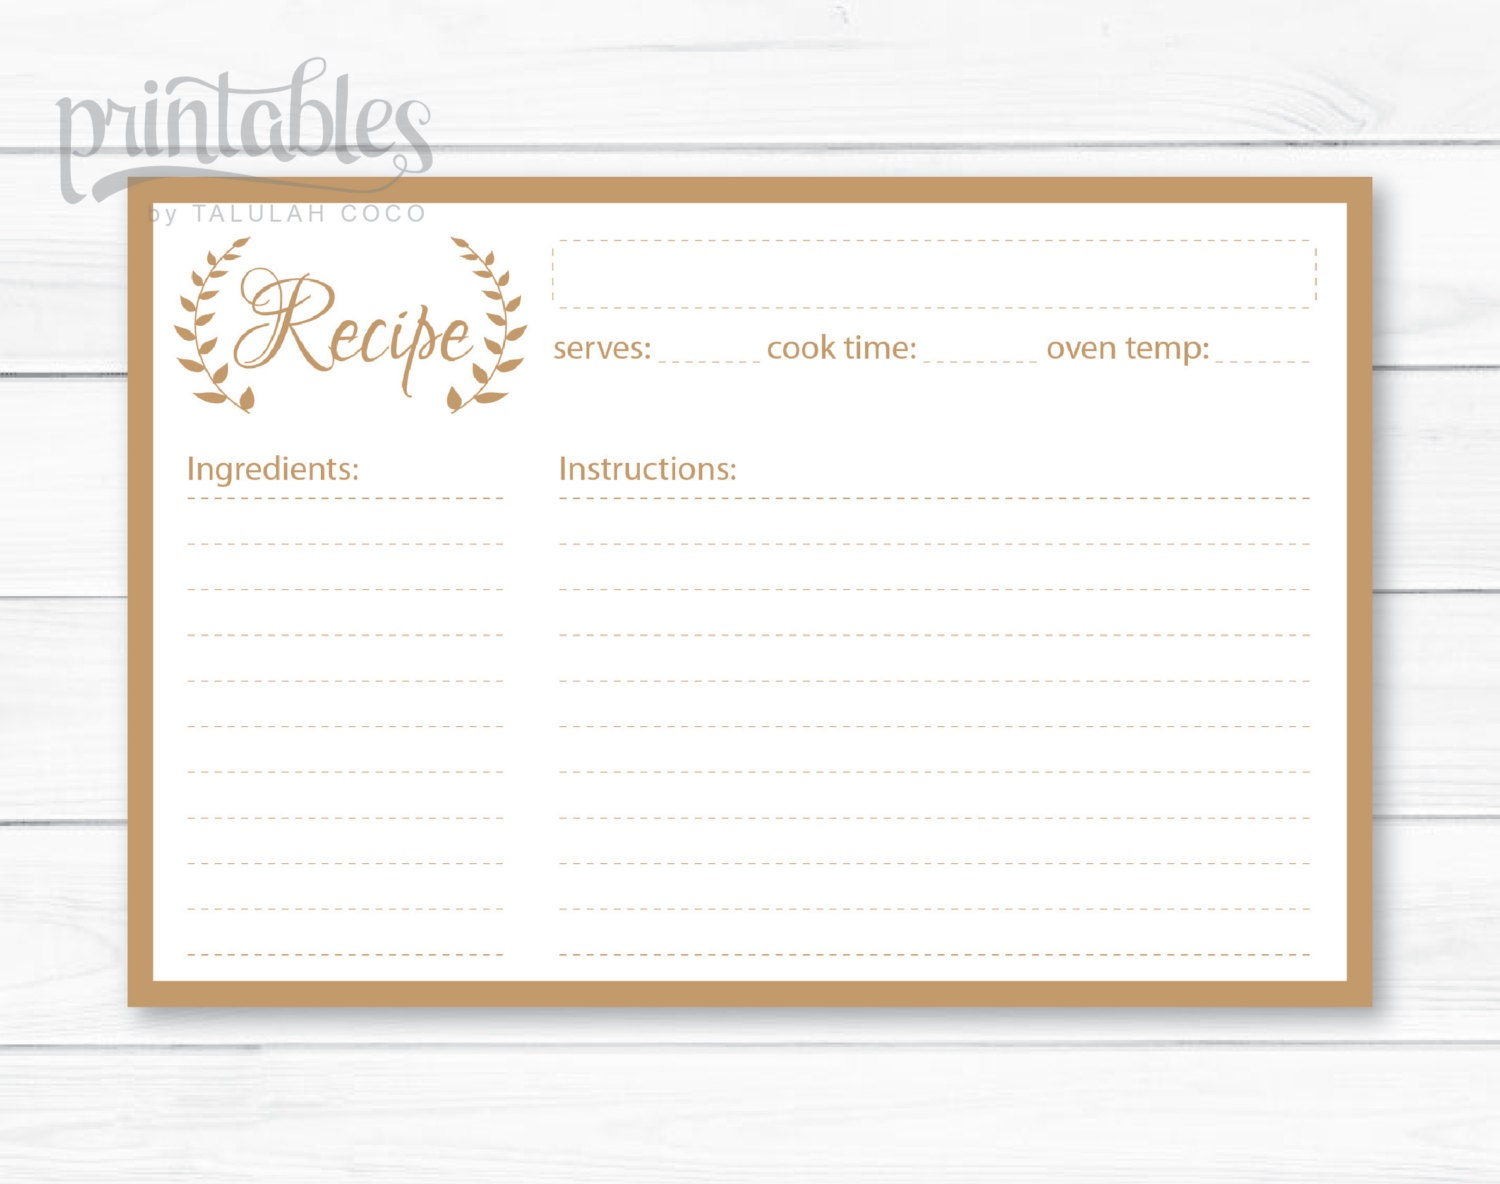 Doc720480 Recipe Card Template for Word Free Printable Recipe – Free Recipe Card Template for Word